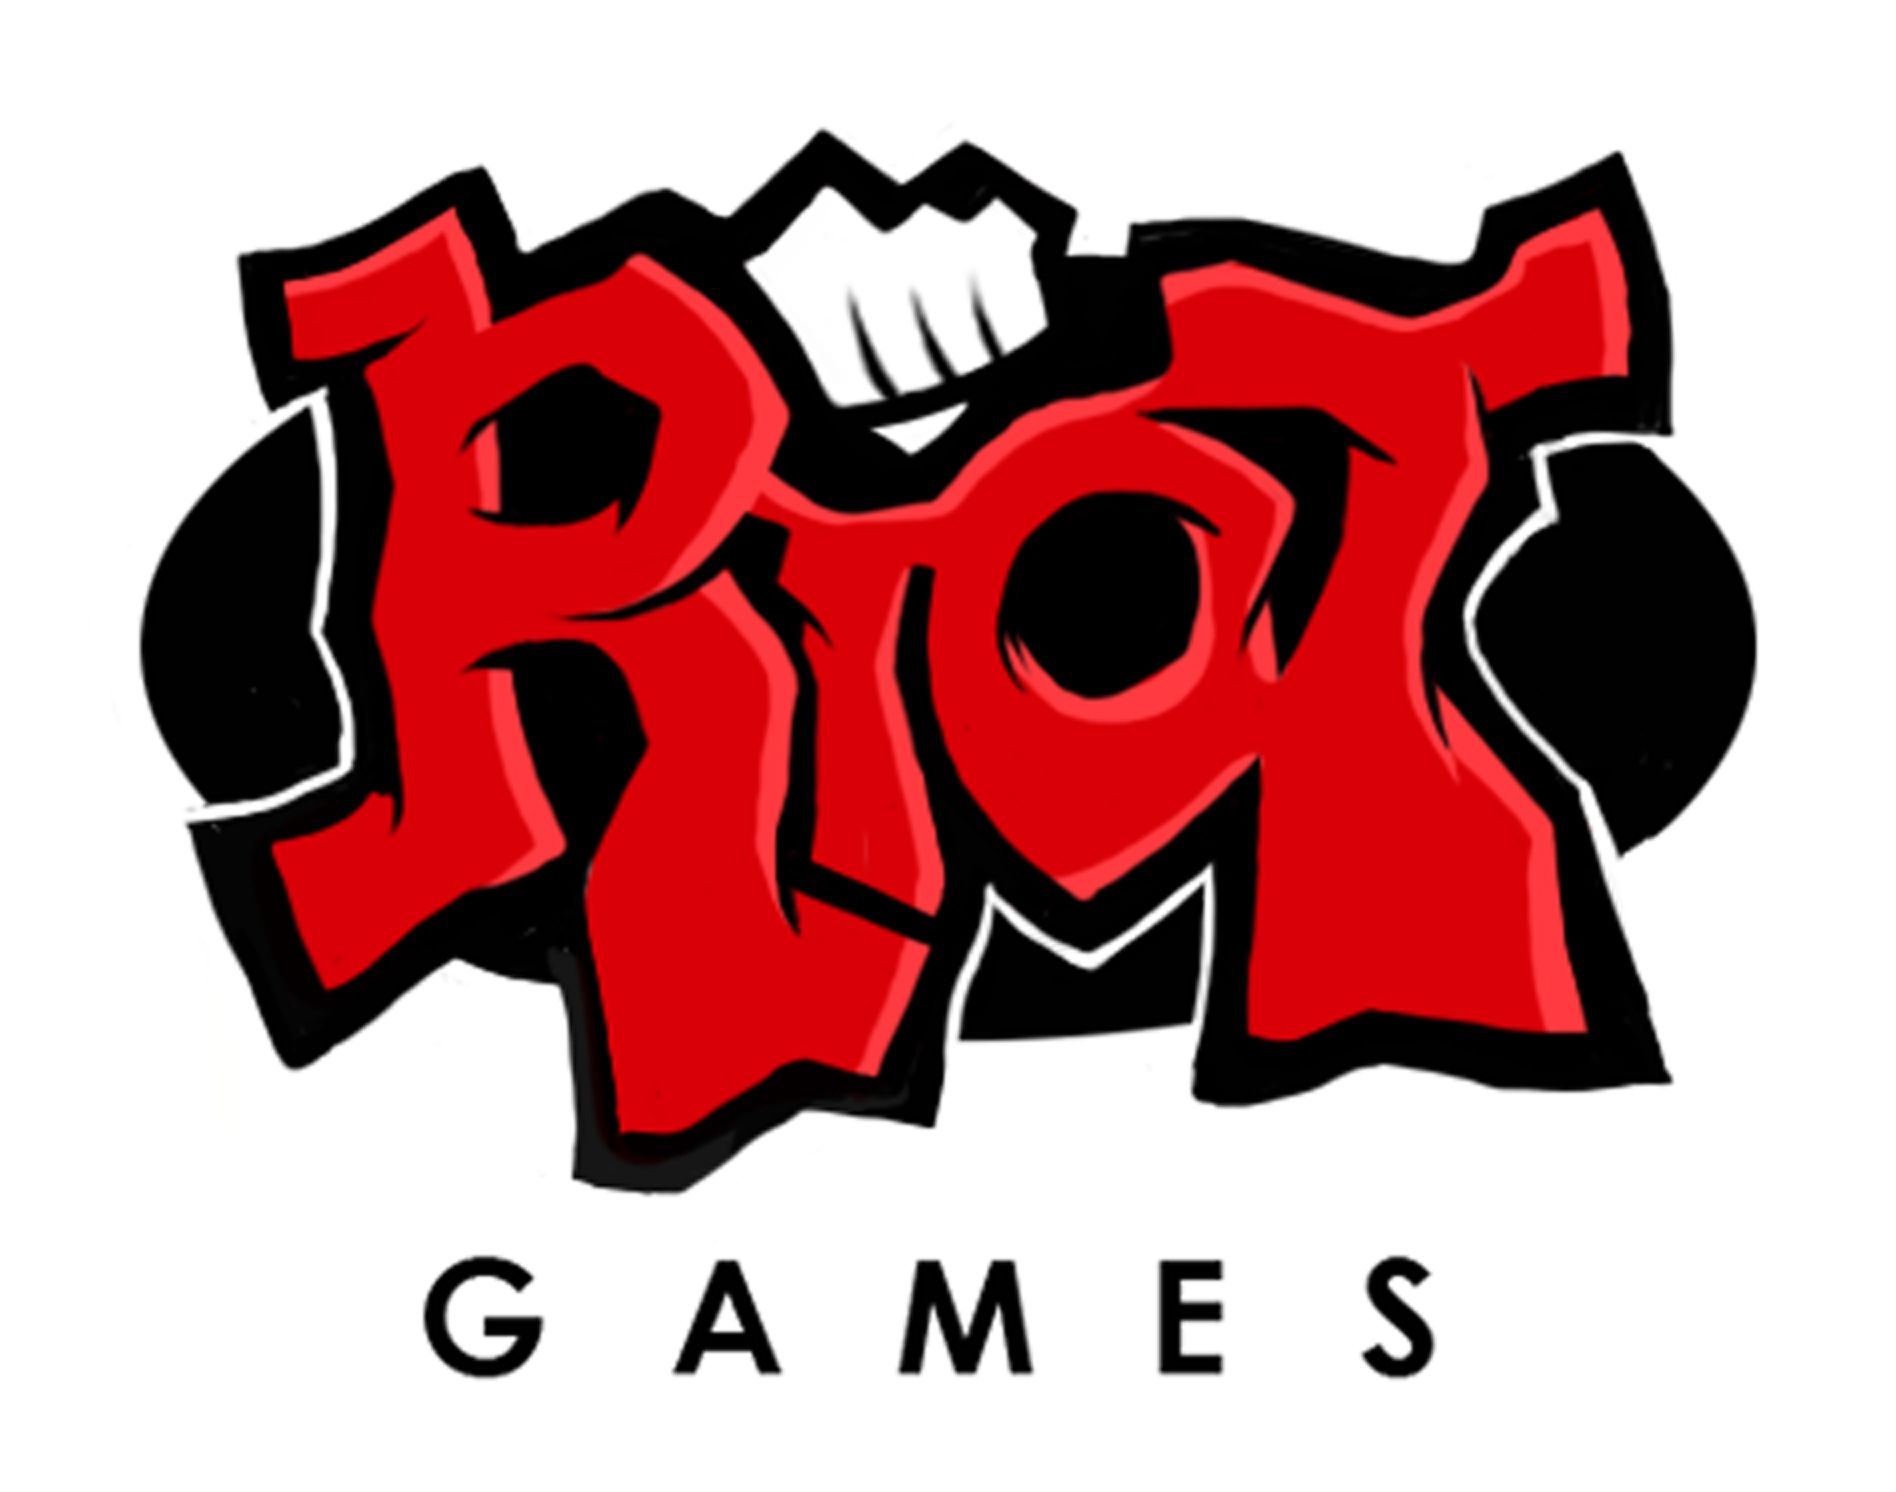 games logo recherche google game logo pinterest riot games rh pinterest com  mlg team logo maker